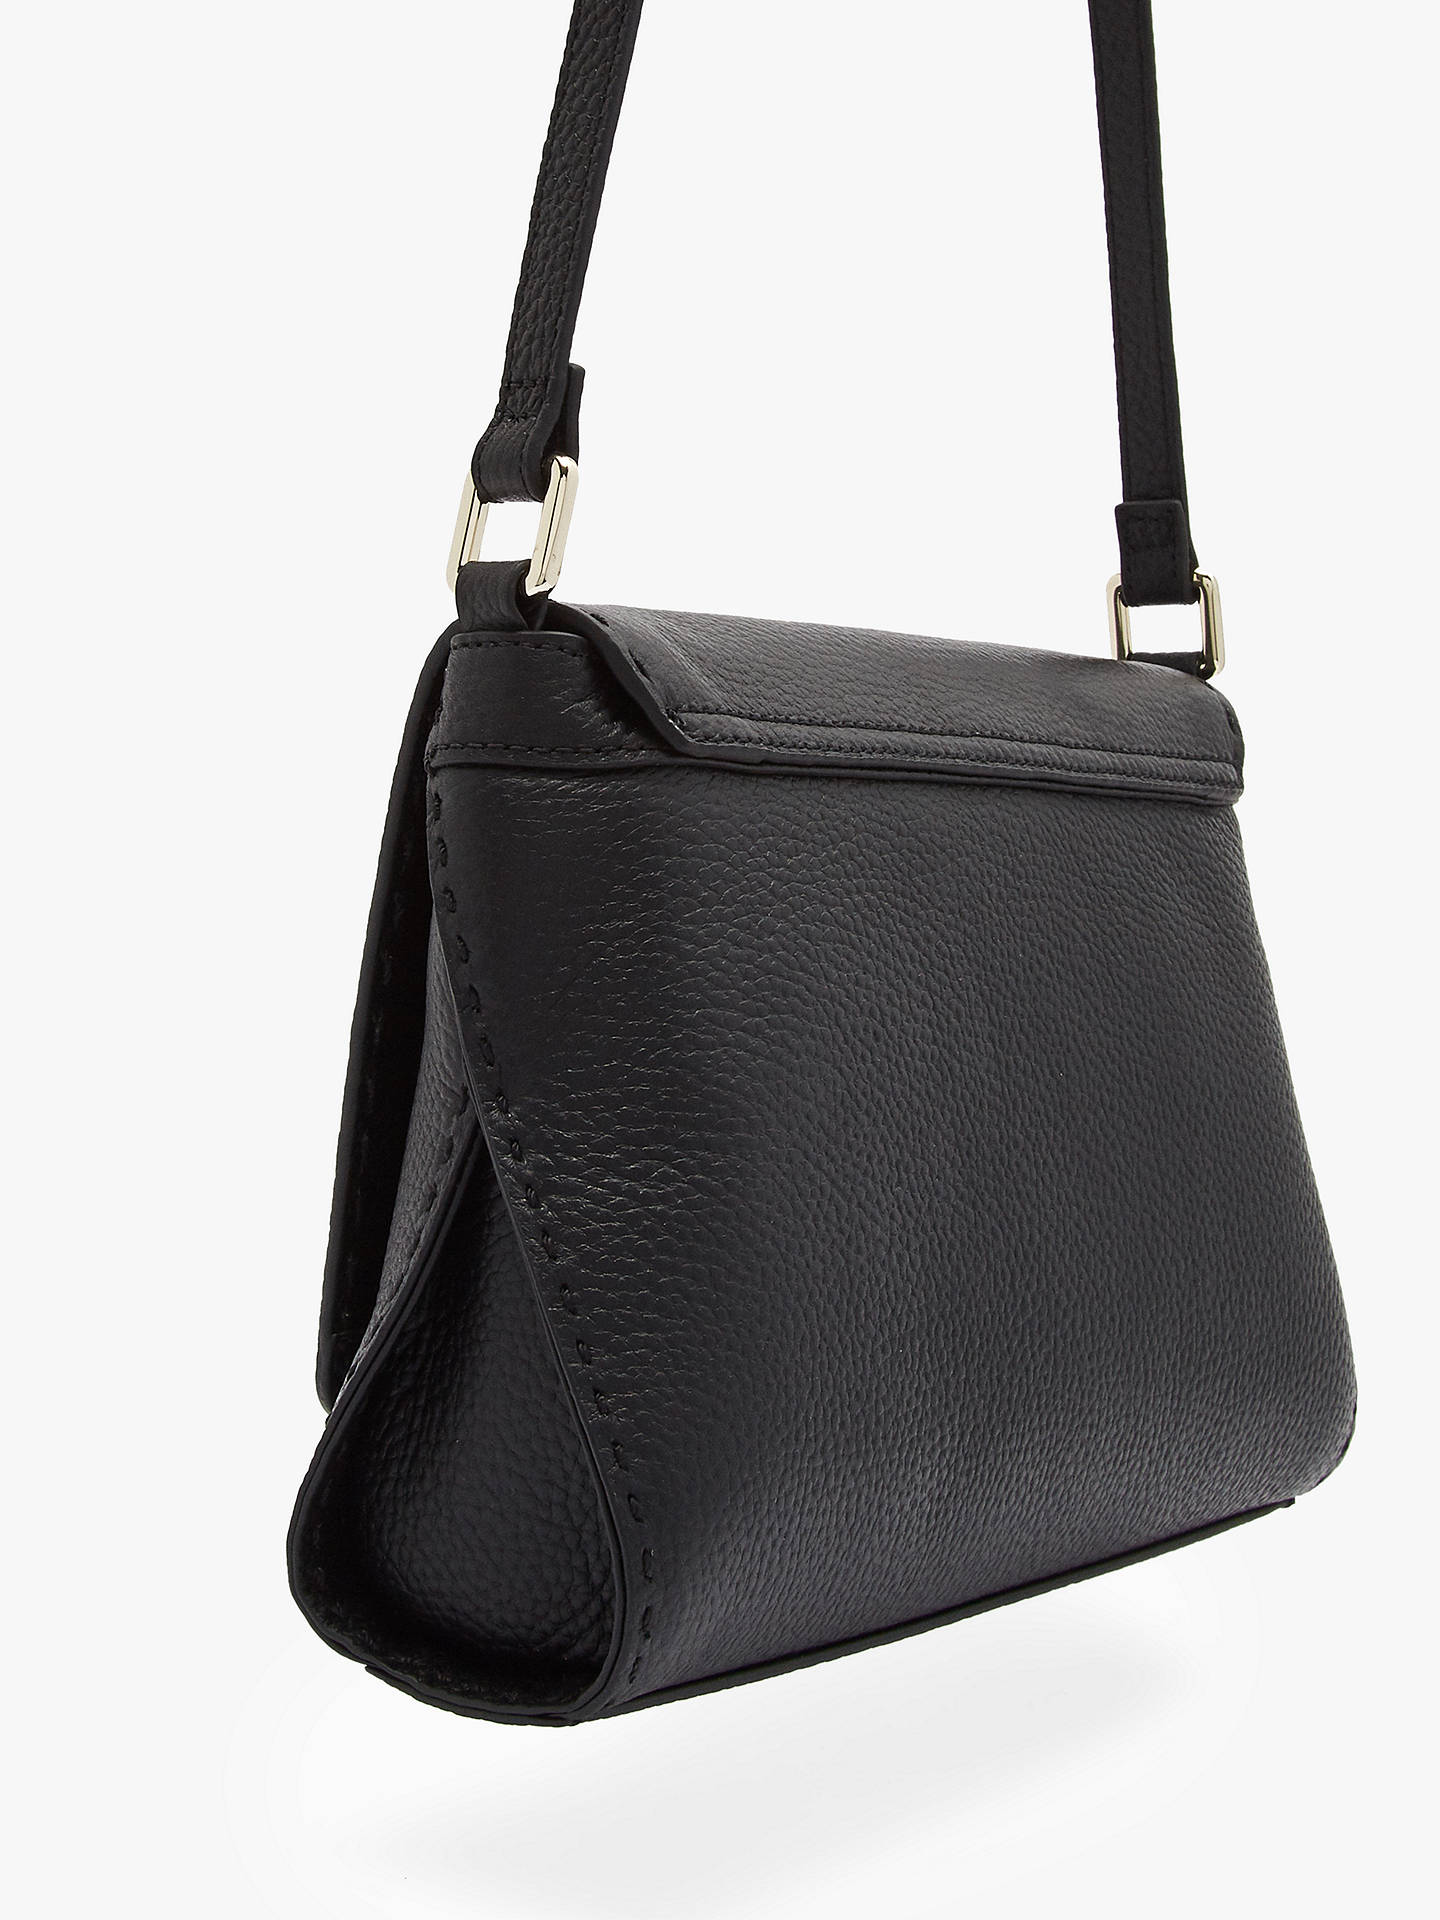 7570df828455 Ted Baker Arista Small Leather Tote Bag at John Lewis   Partners